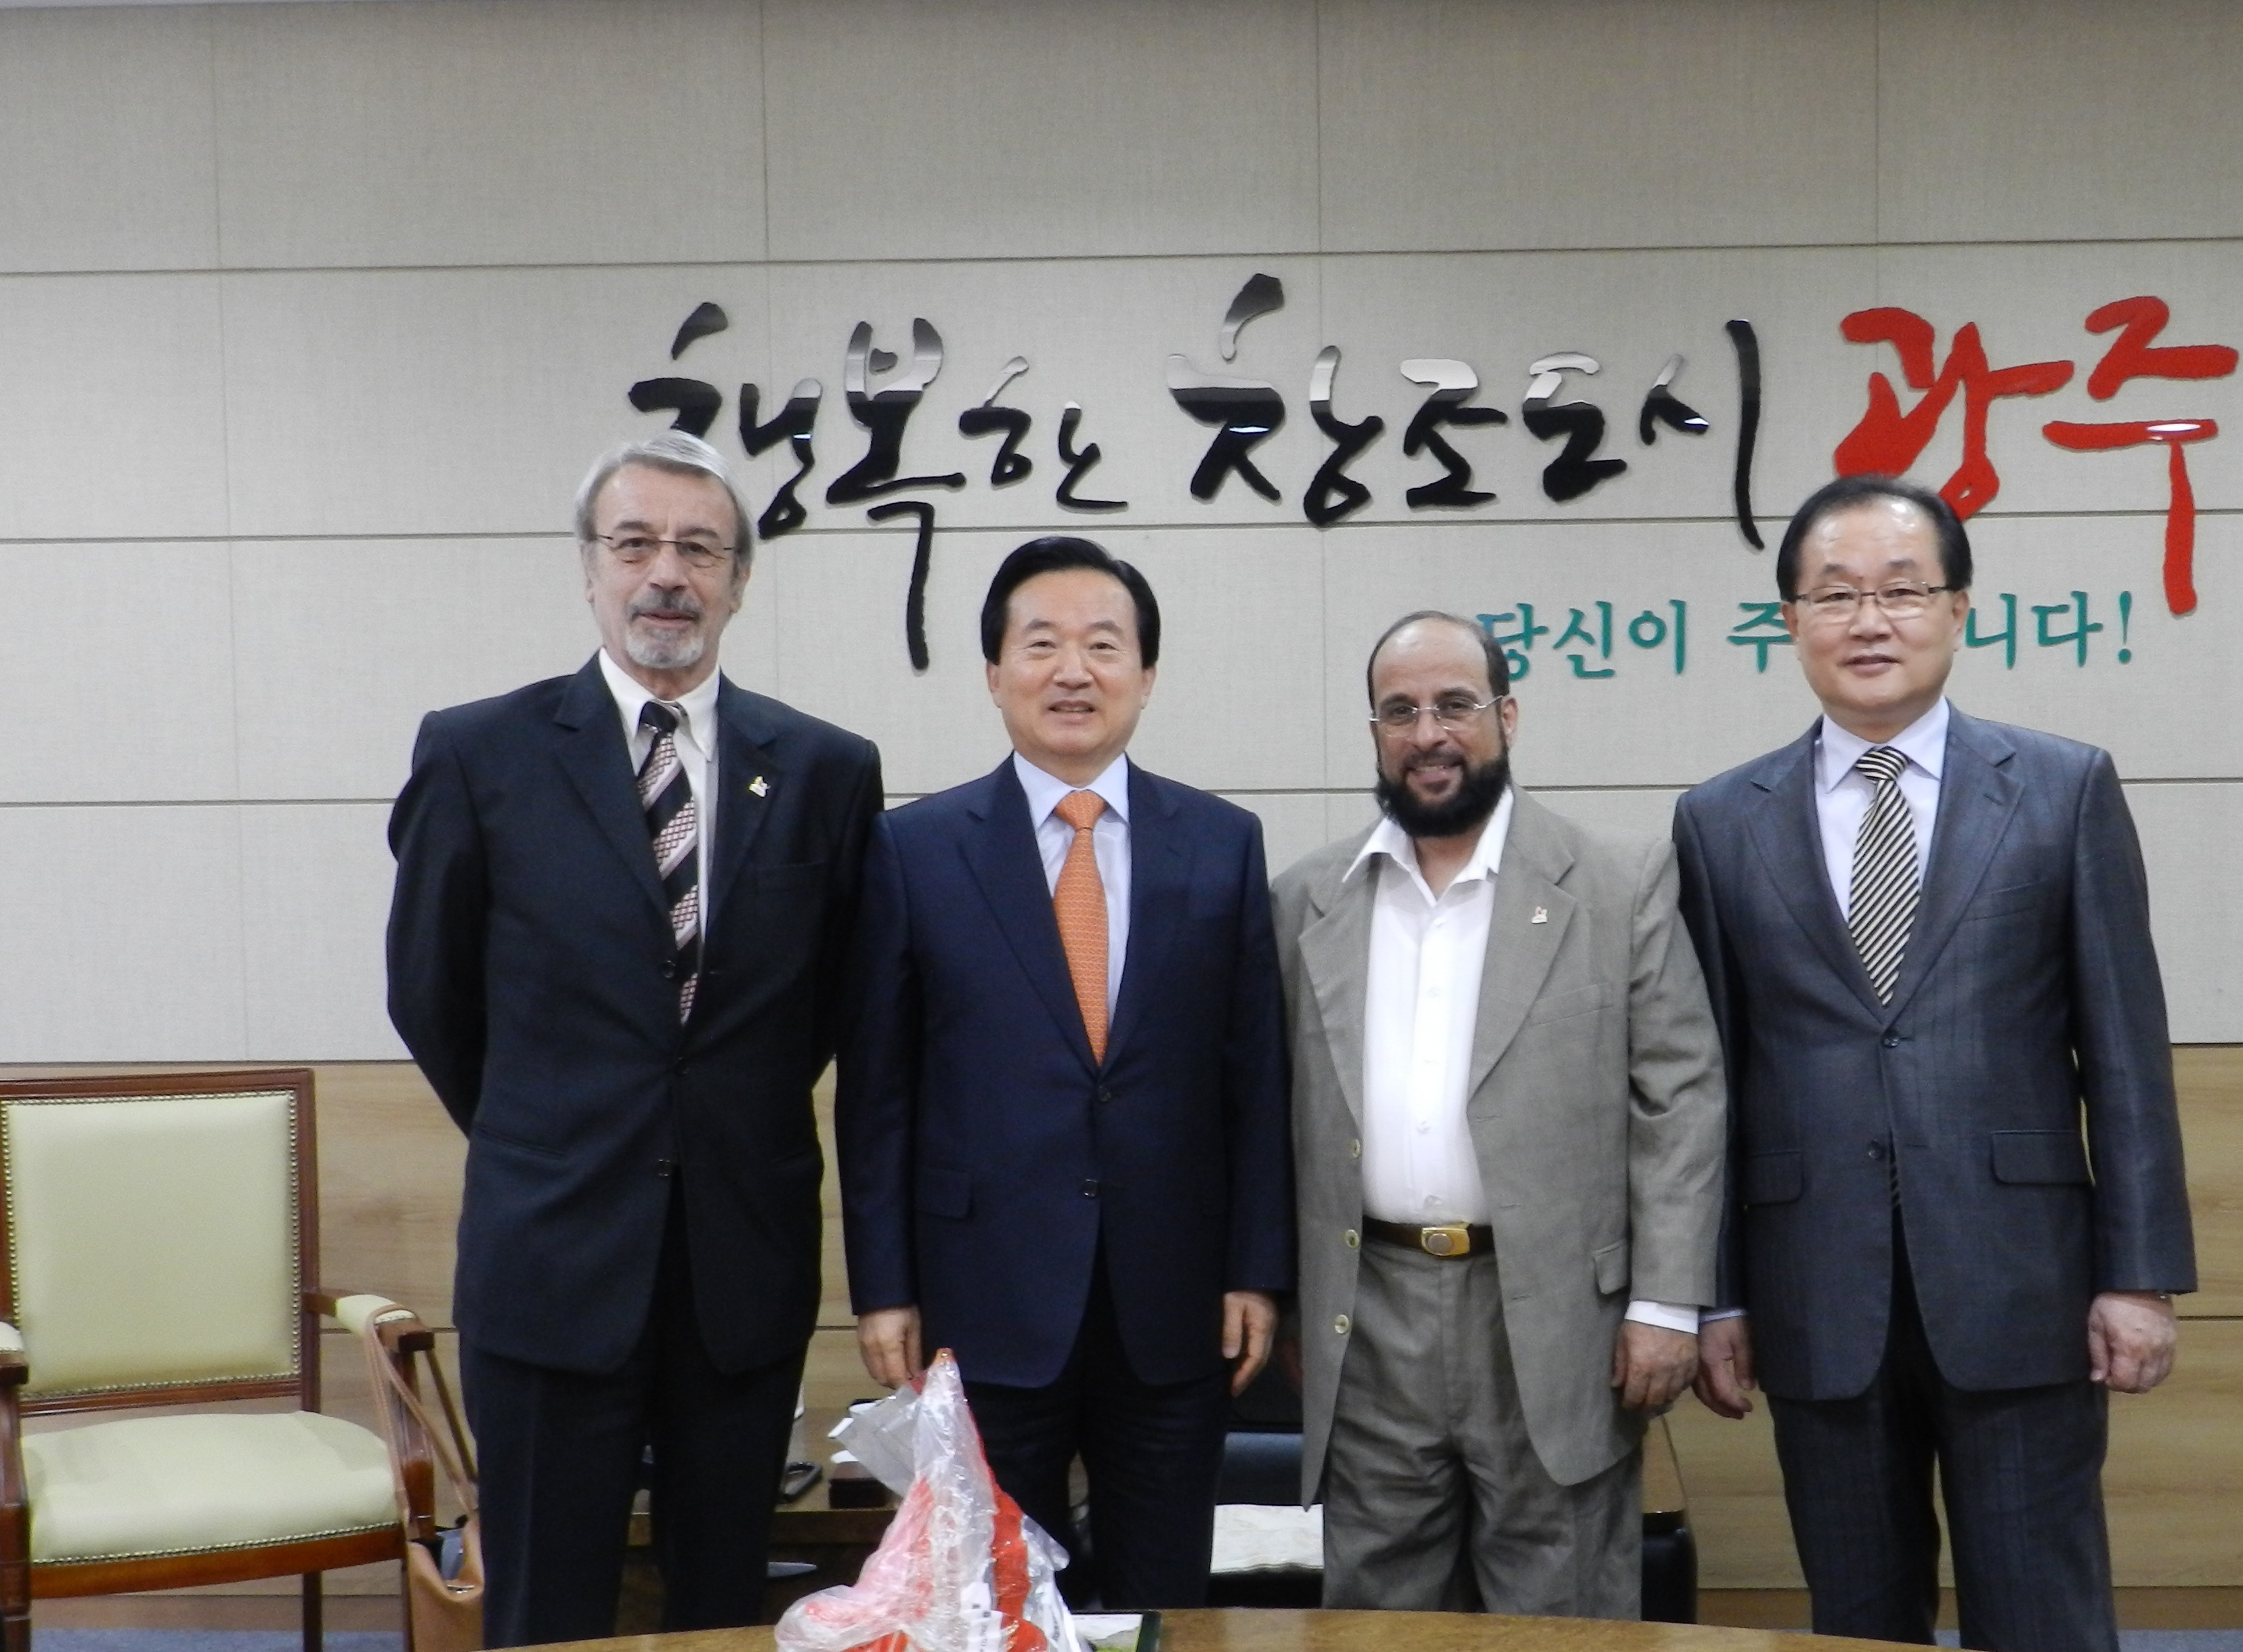 AIPS reporters with Mayor Kang and Secretary General Kim